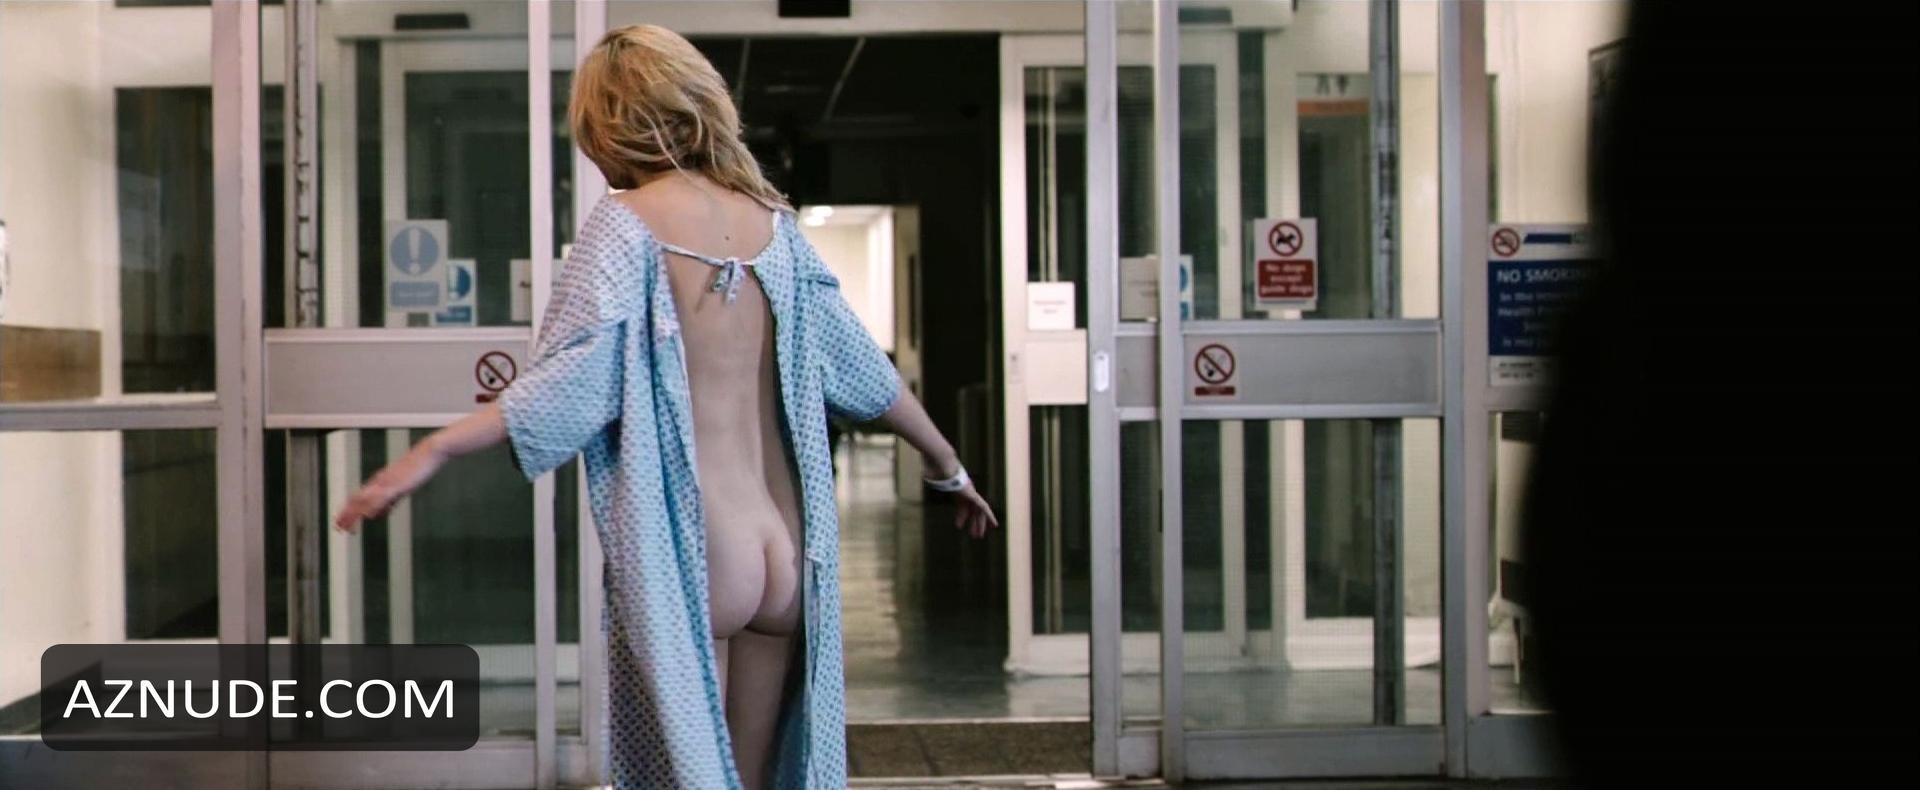 imogen poots nude pussy